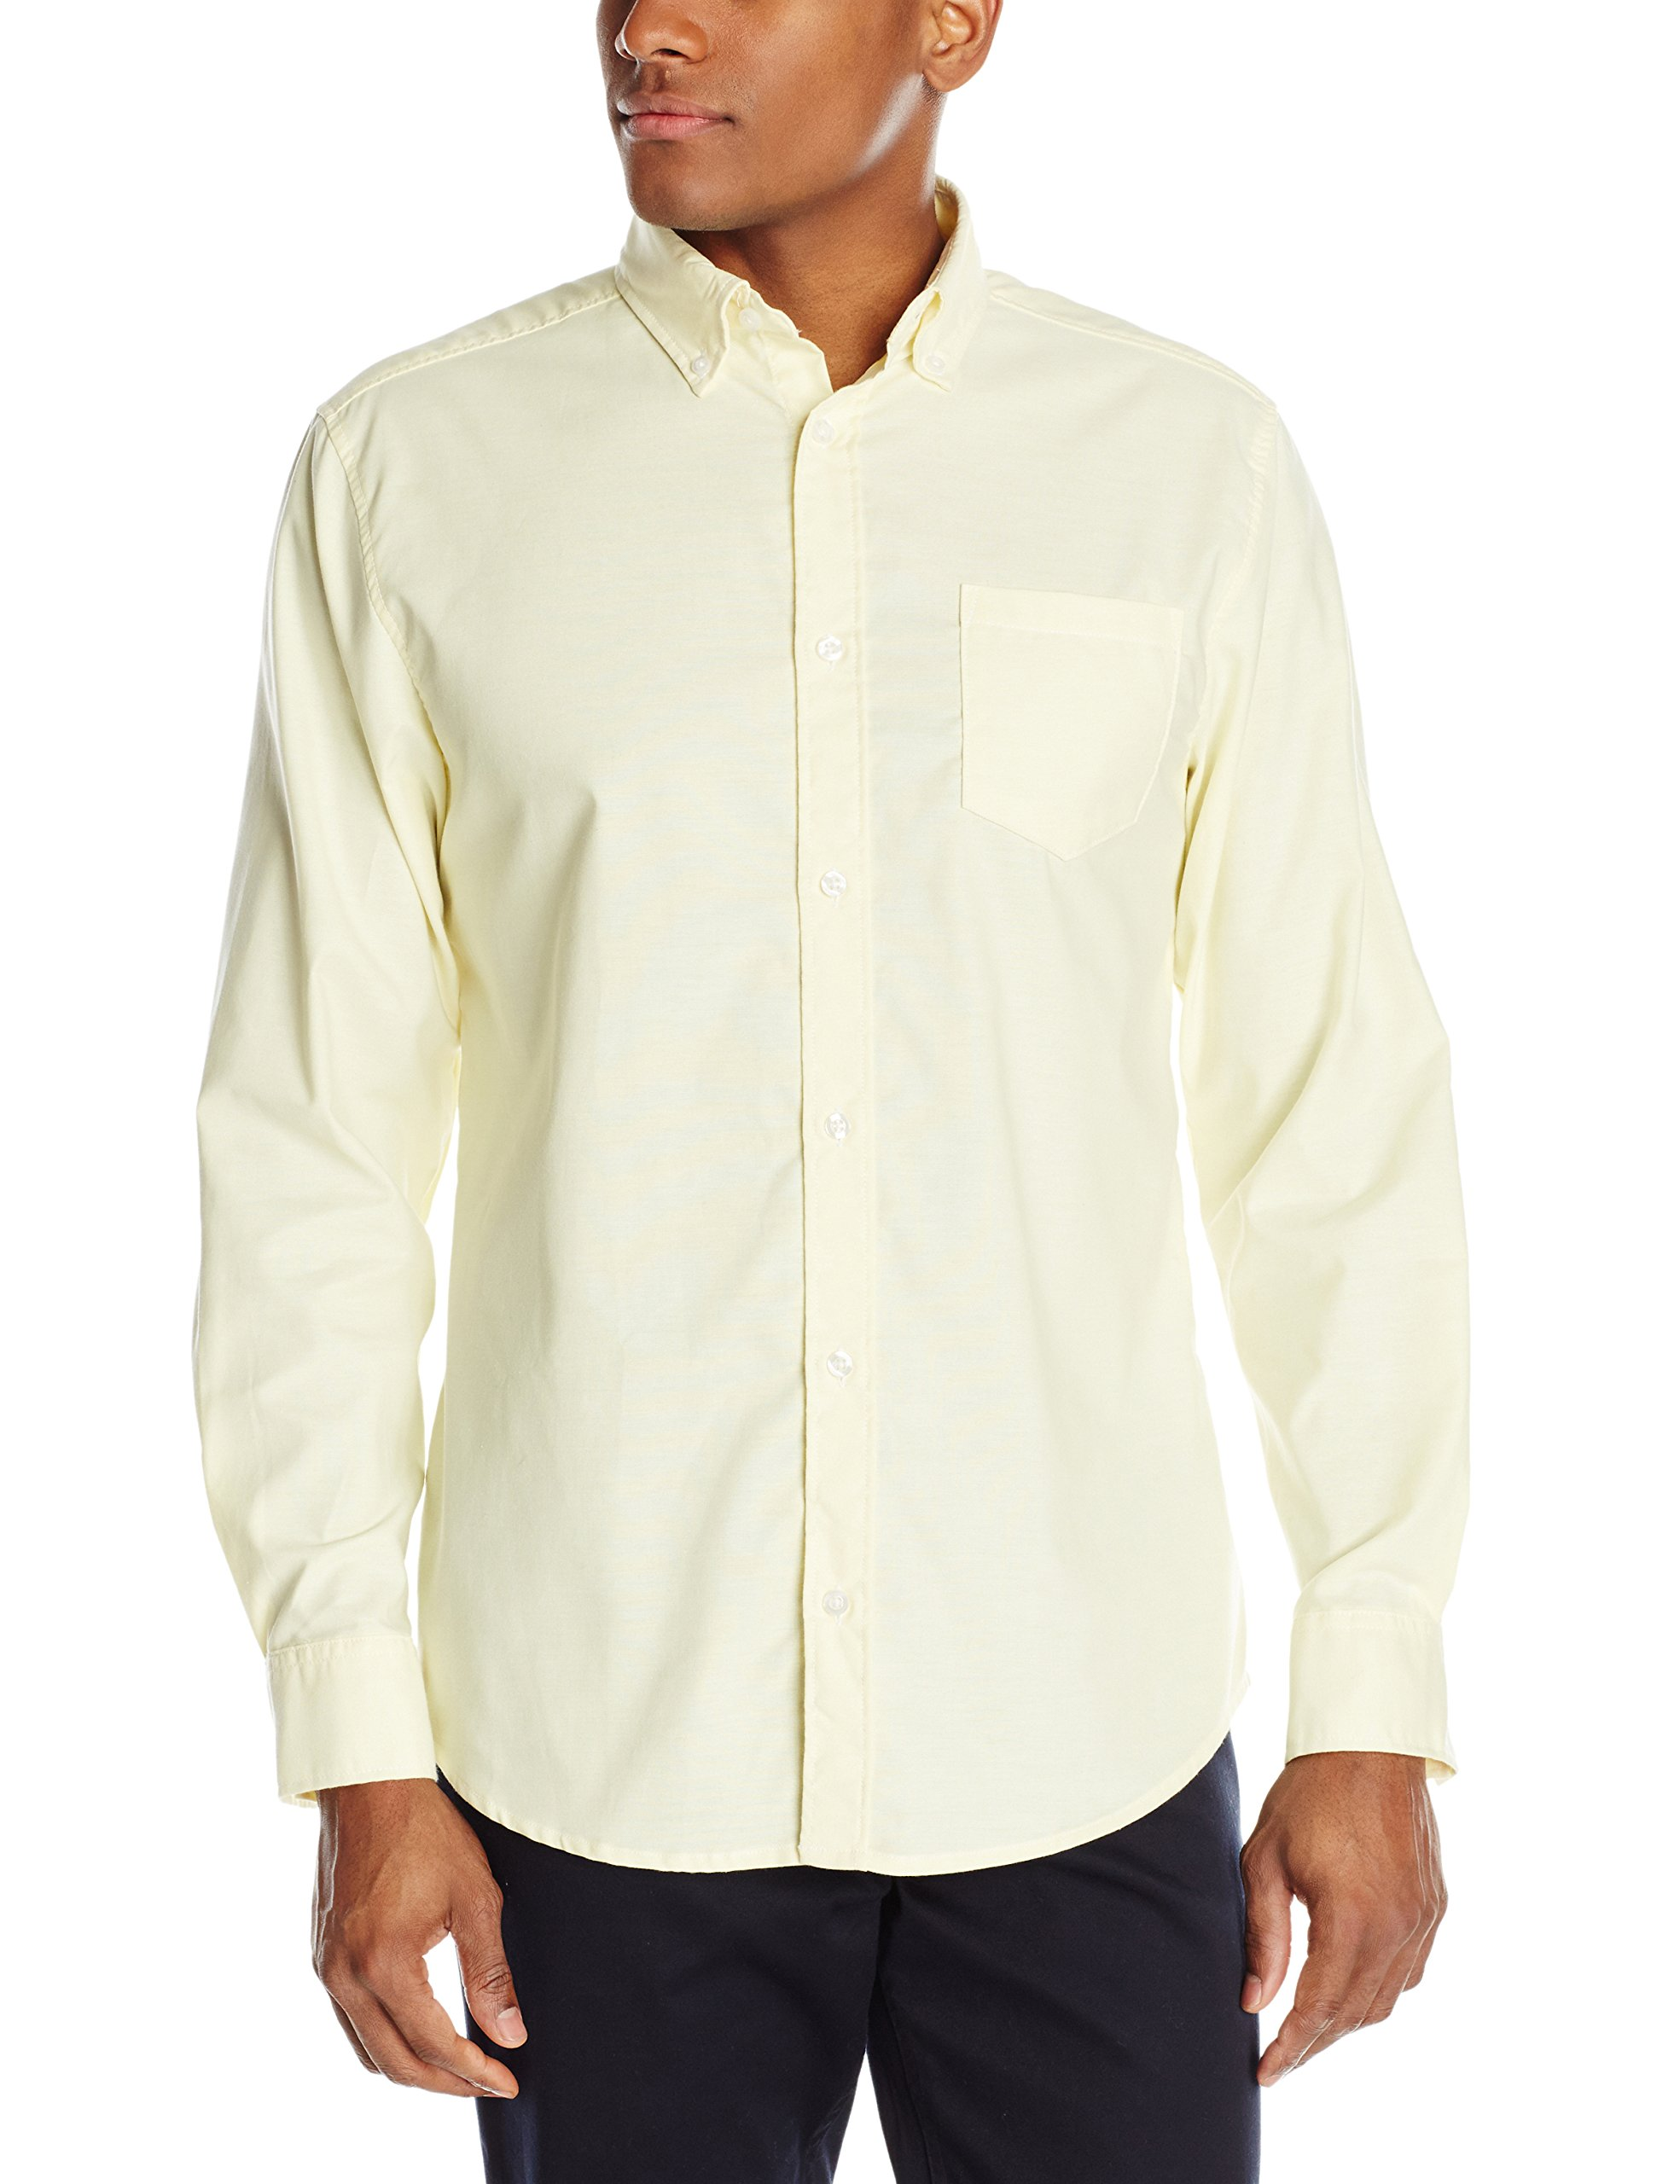 Lee Uniforms Men's Long Sleeve Oxford Shirt, Yellow, Large by Lee Uniforms